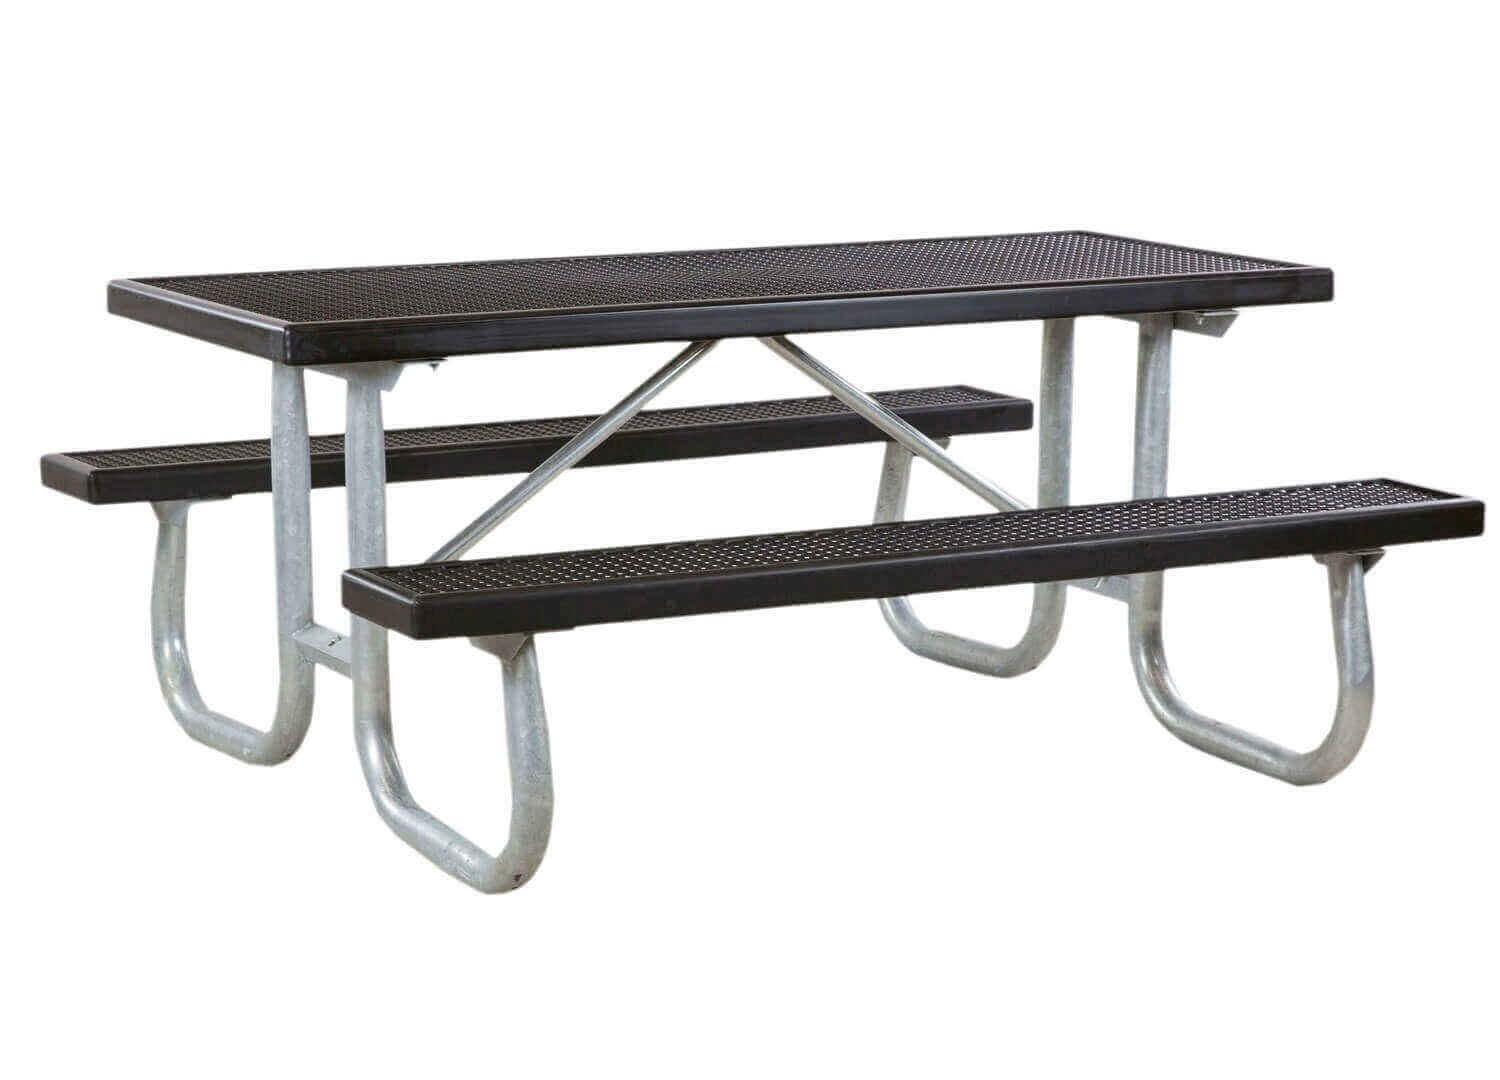 Ft Heavy Duty Plastisol Coated Metal Picnic Table With Welded - Black metal picnic table